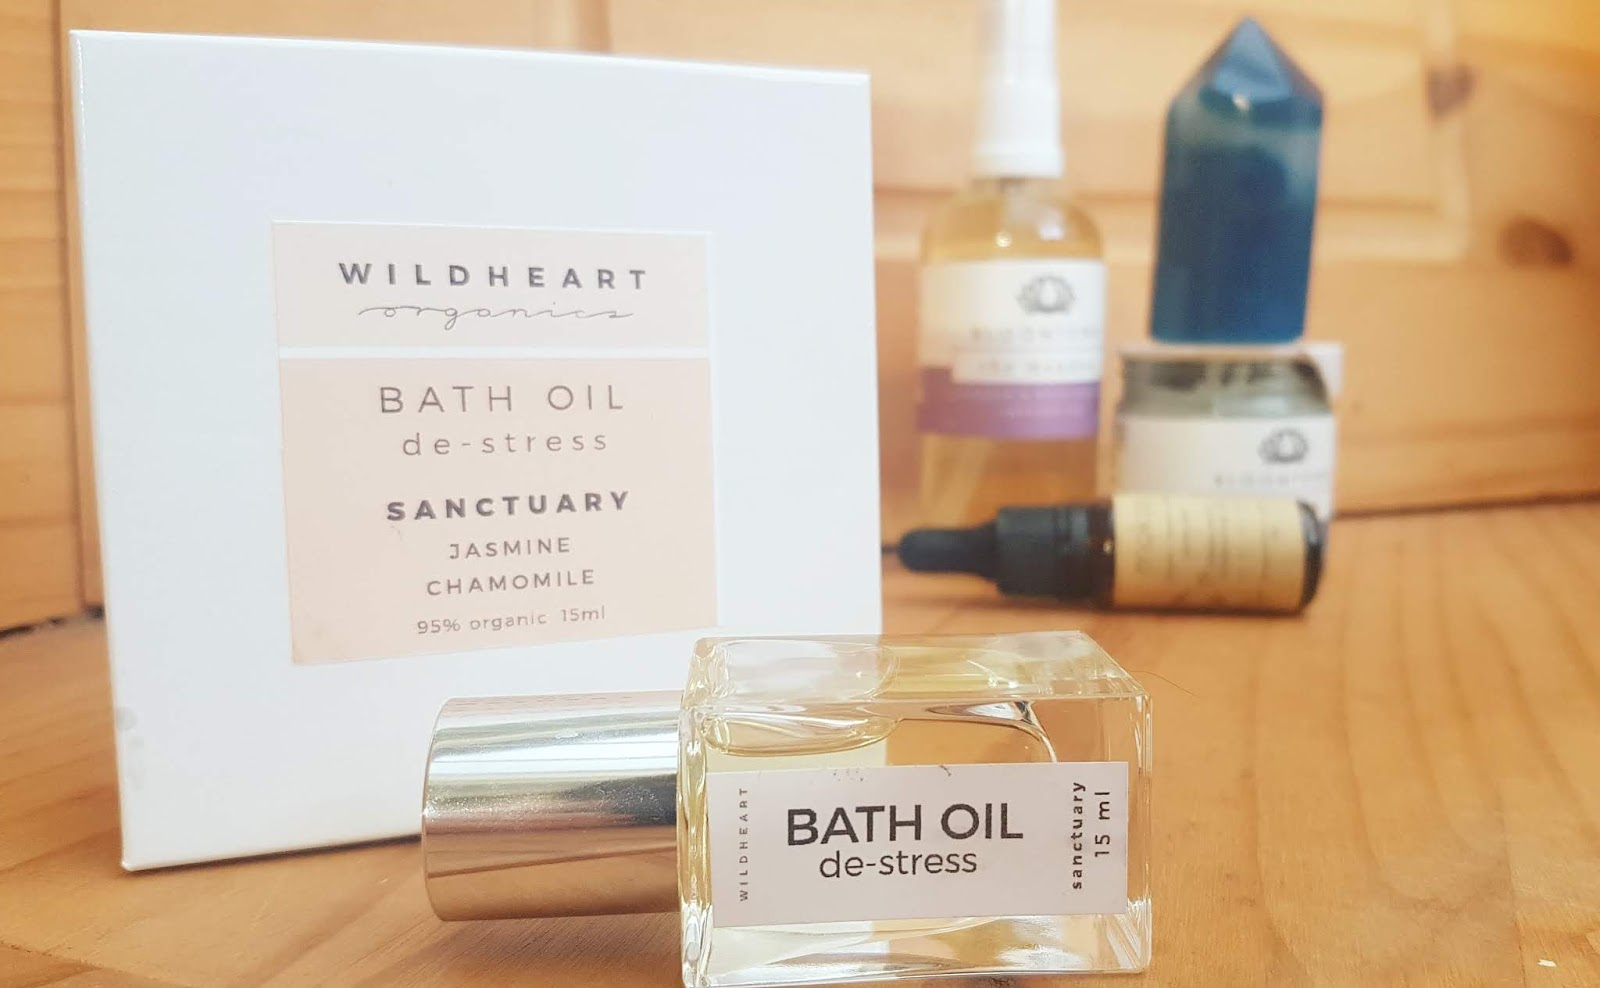 Wildheart Organics bath oil